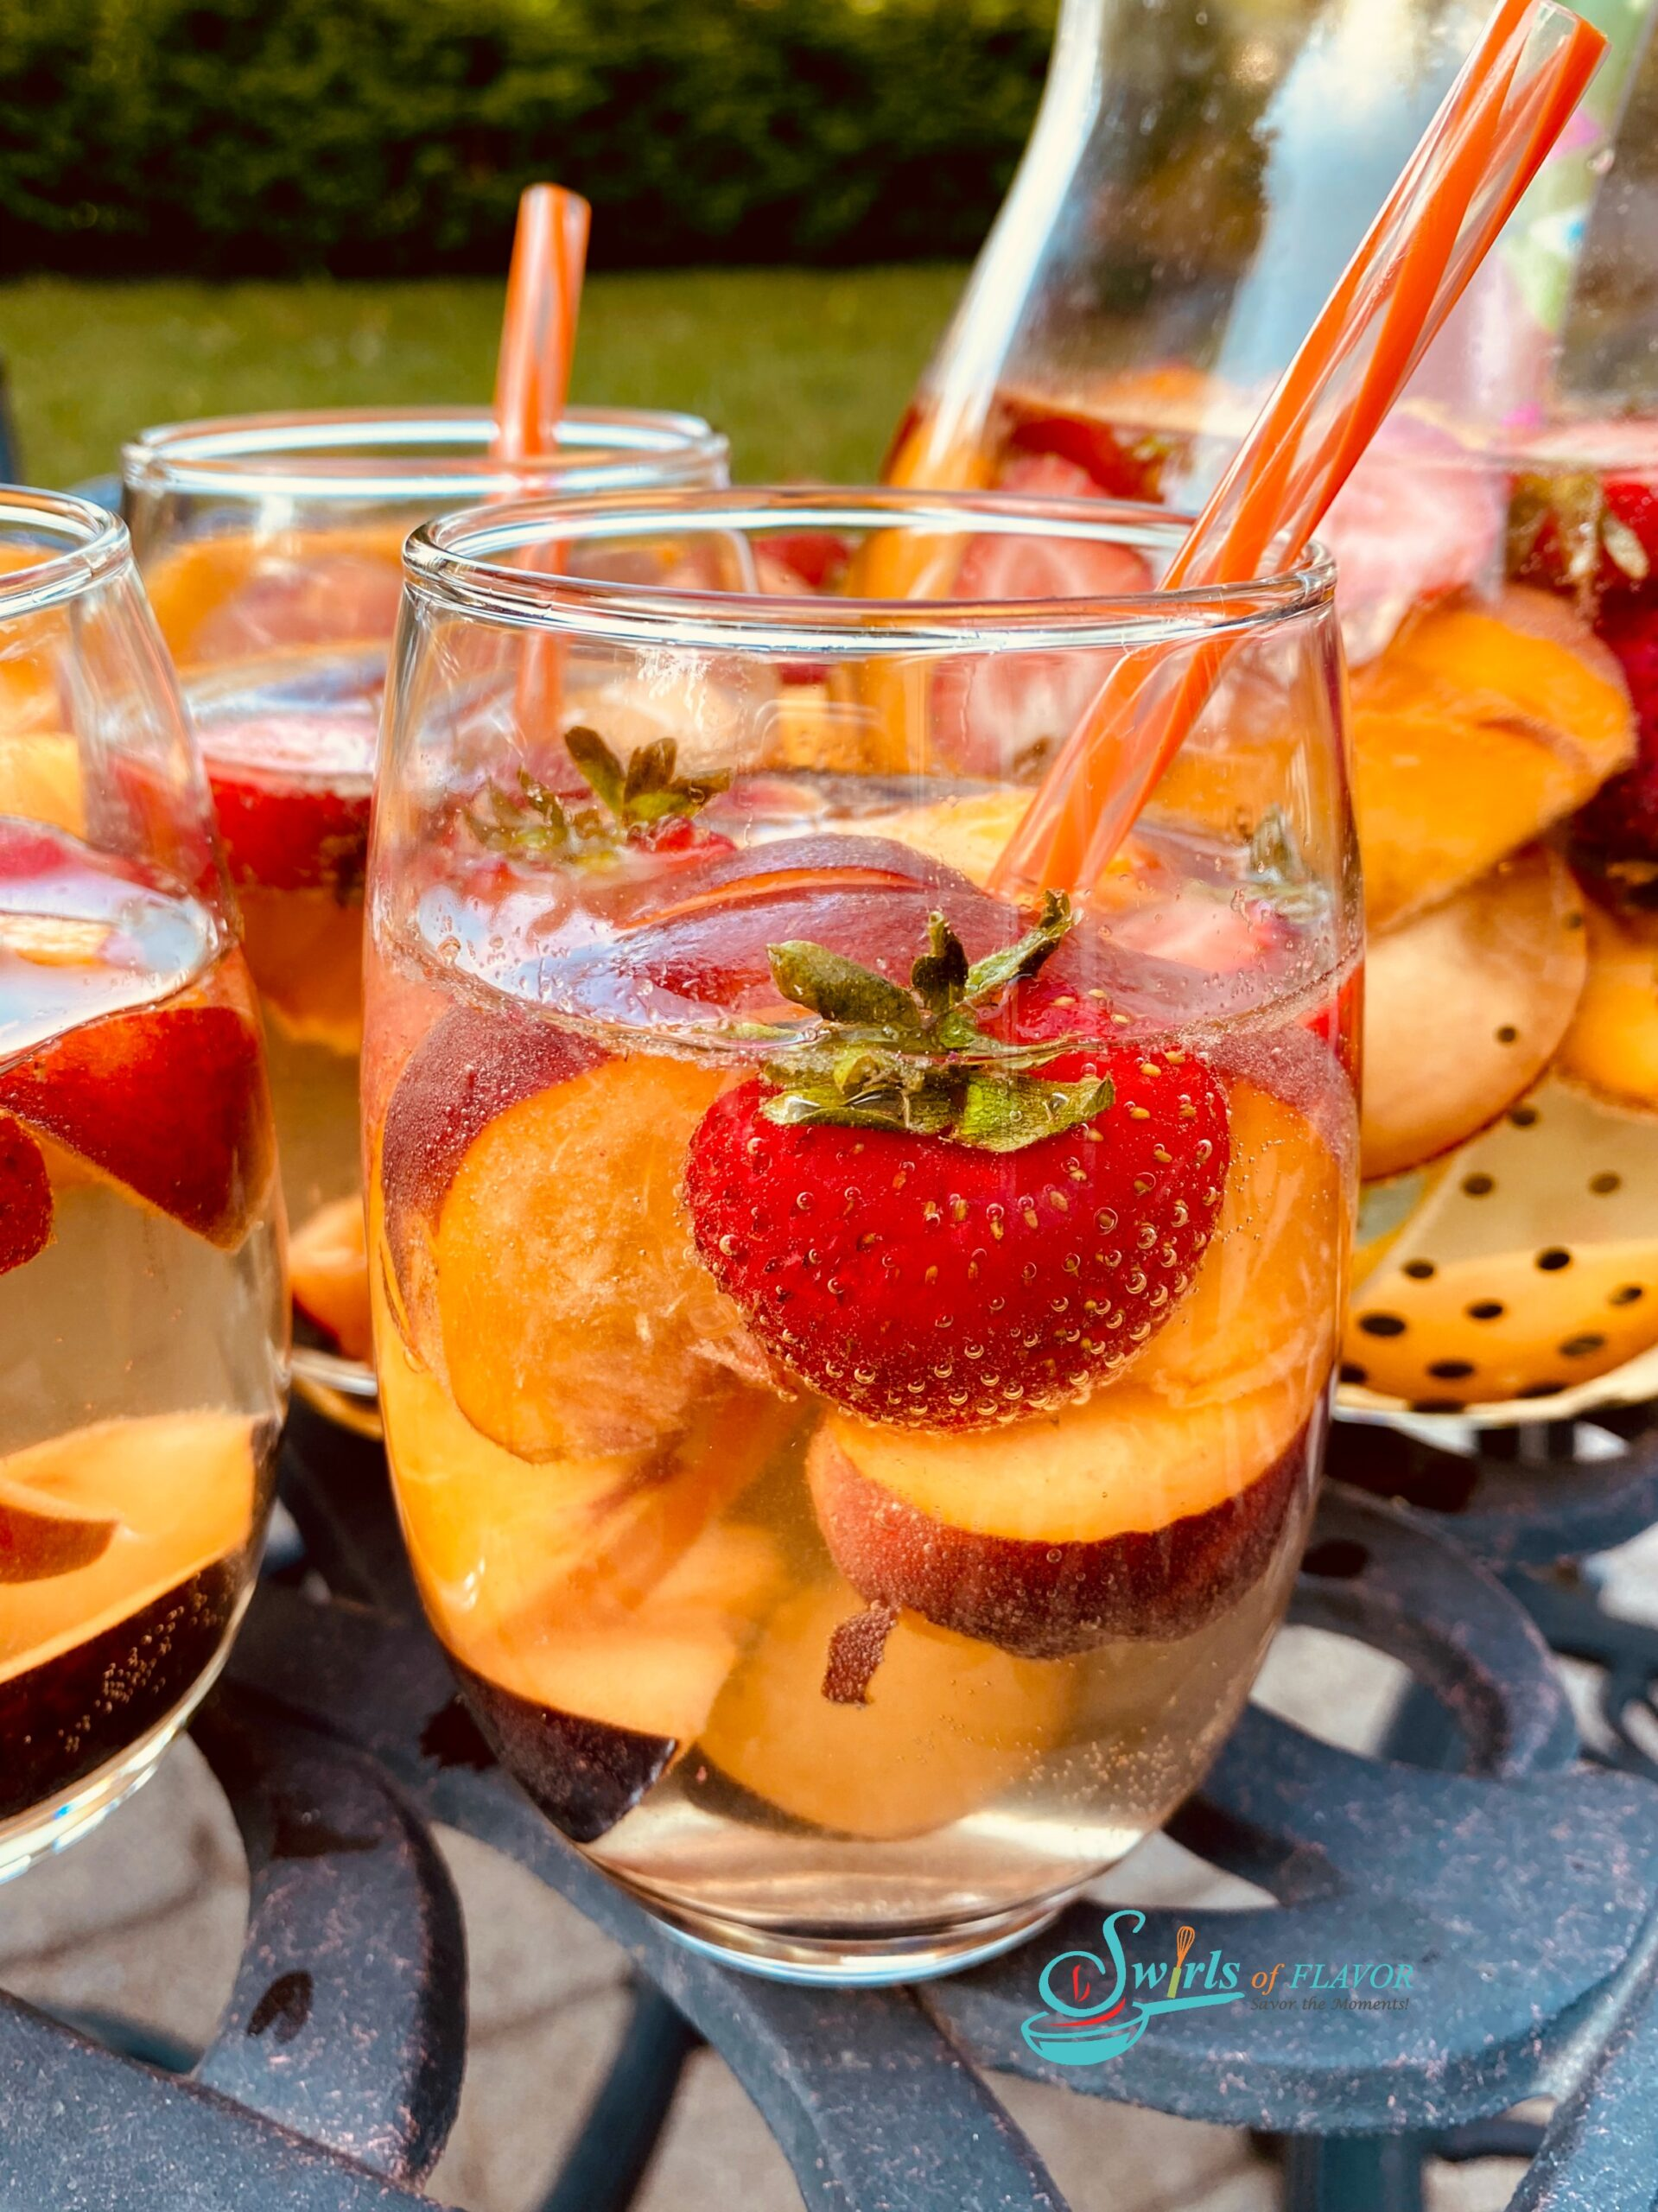 stemless wine glasses filled with peach sangria and fresh fruit